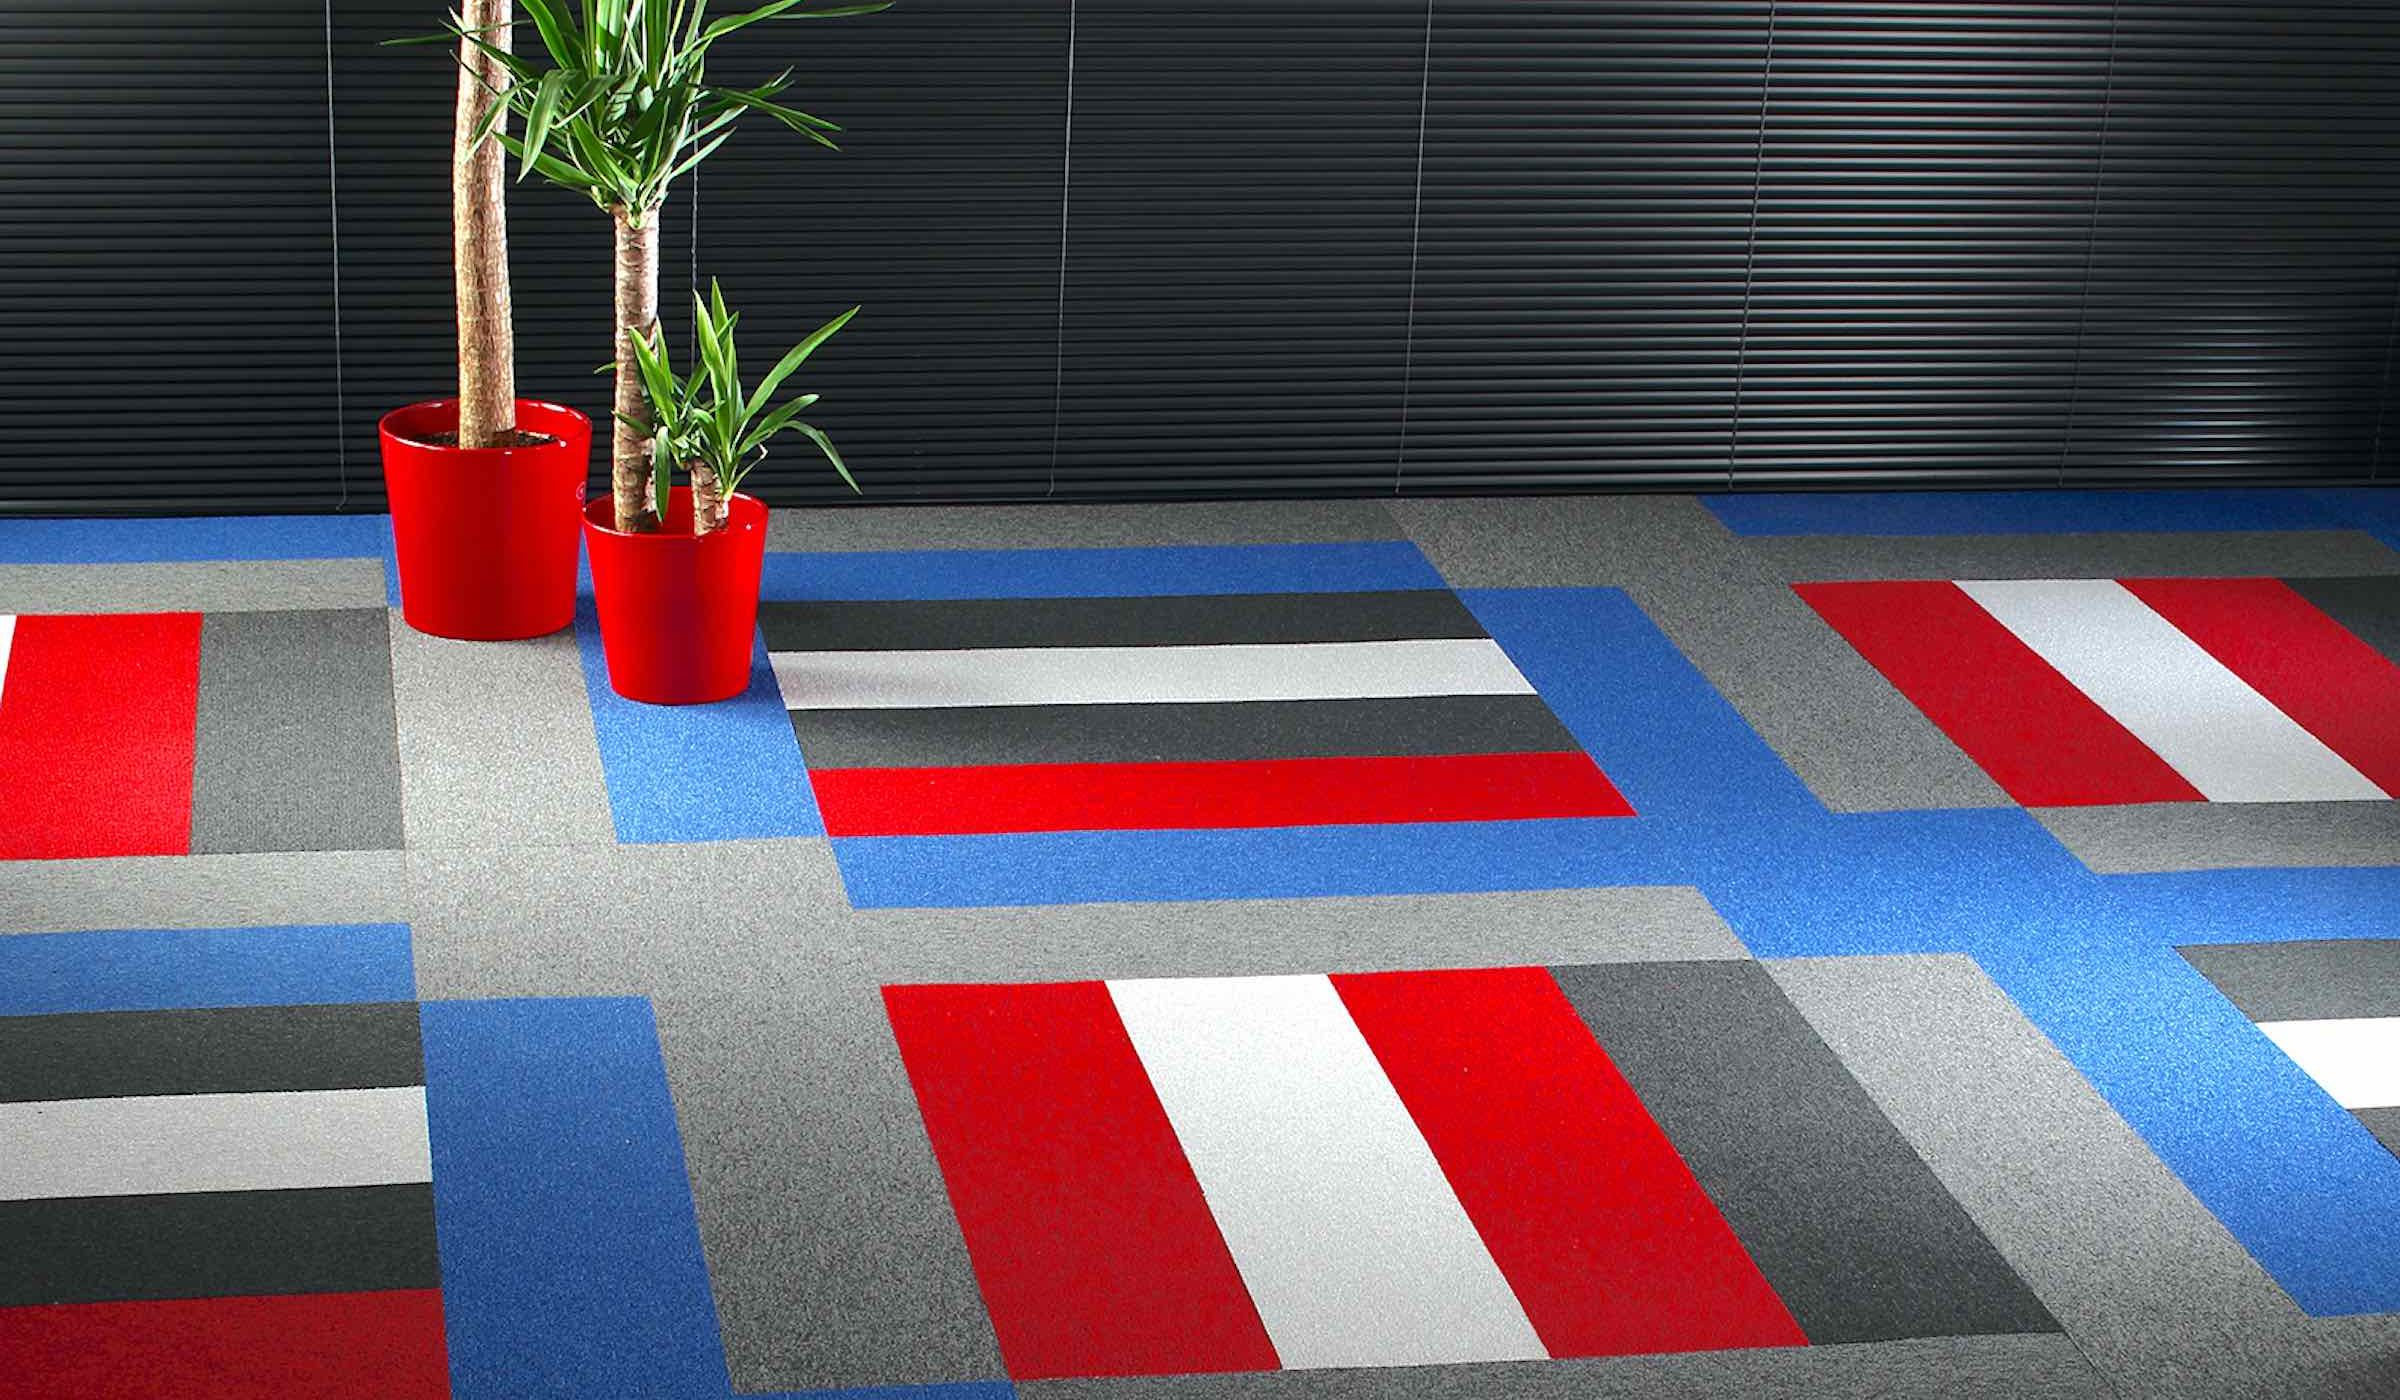 Design Dek | Paragon Carpet Tiles | Commercial Carpet Tiles | Design Carpet Tiles 2